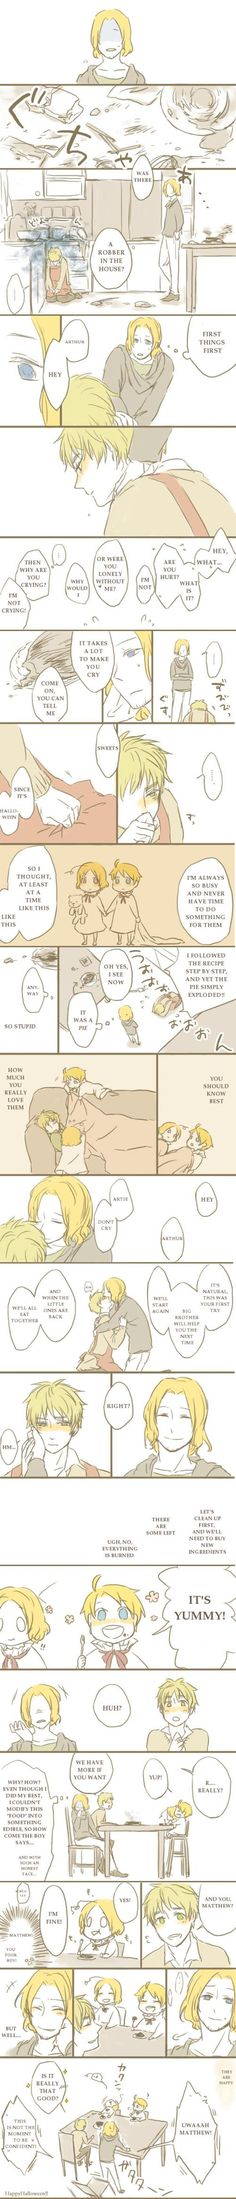 FACE Family <<< aw this stuff always gets me.  arthur i hope you know how good a family you got